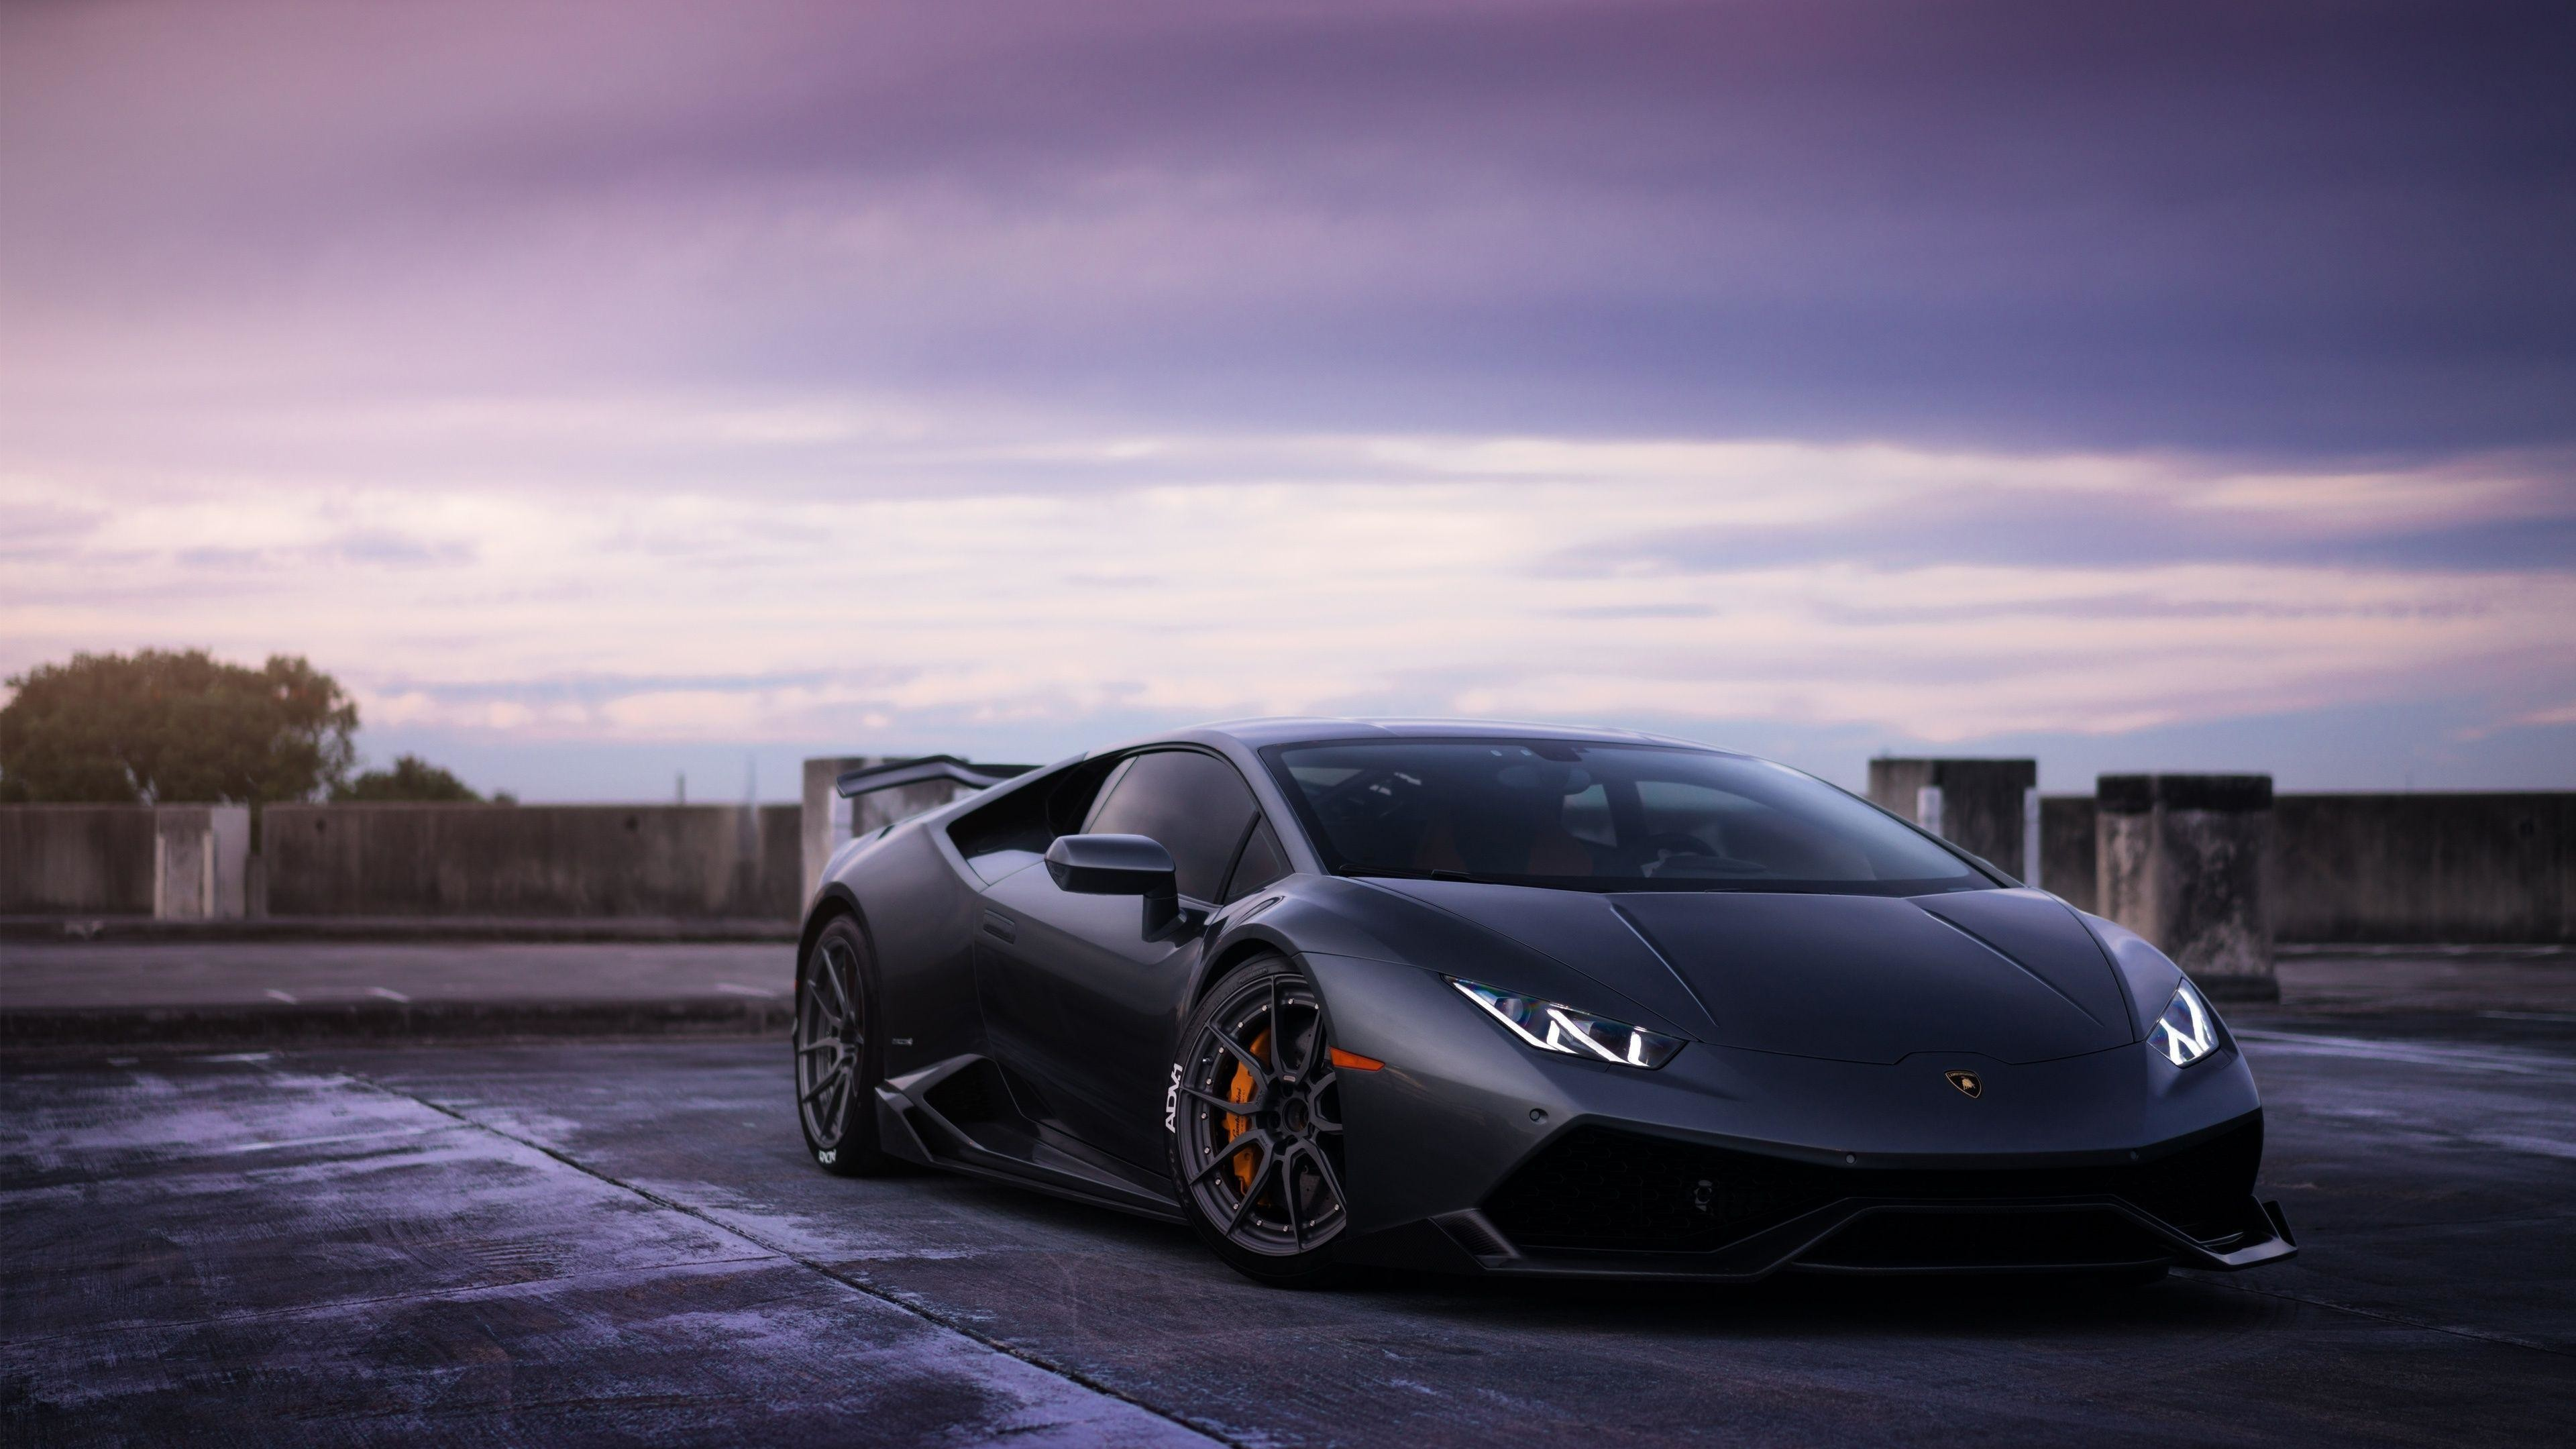 Lamborghini Huracan Wallpapers 74 Background Pictures